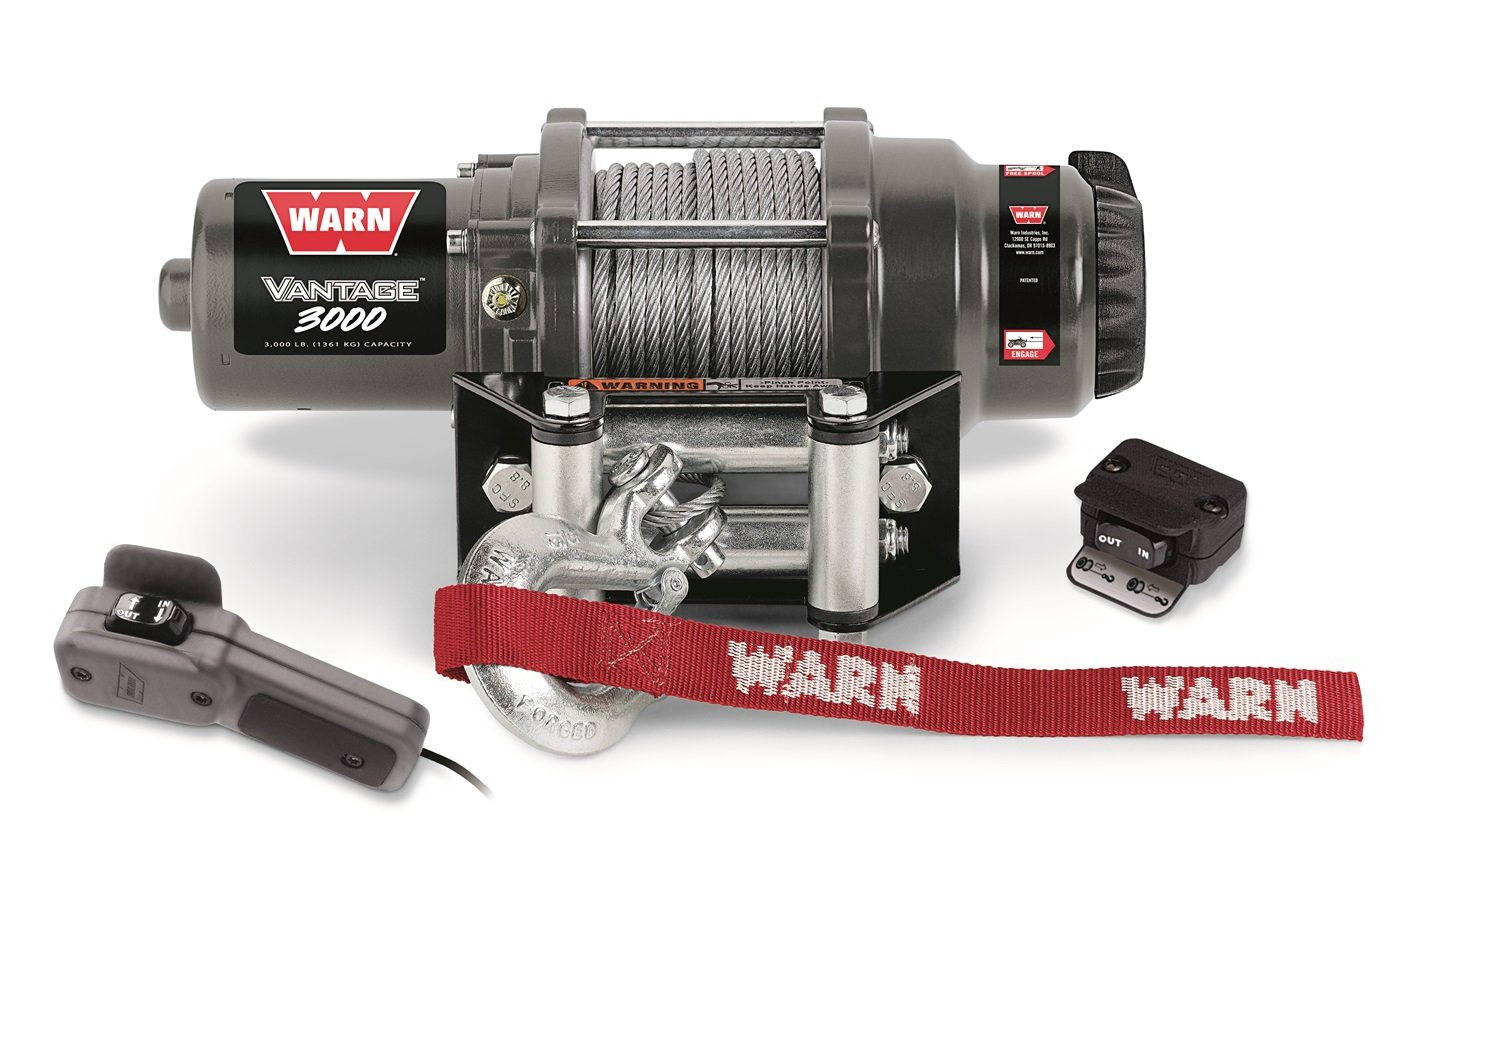 71jbS1GH2gL._SL1500_ amazon com warn 89030 vantage 3000 winch 3000 lb capacity warn vantage 3000 wiring diagram at soozxer.org